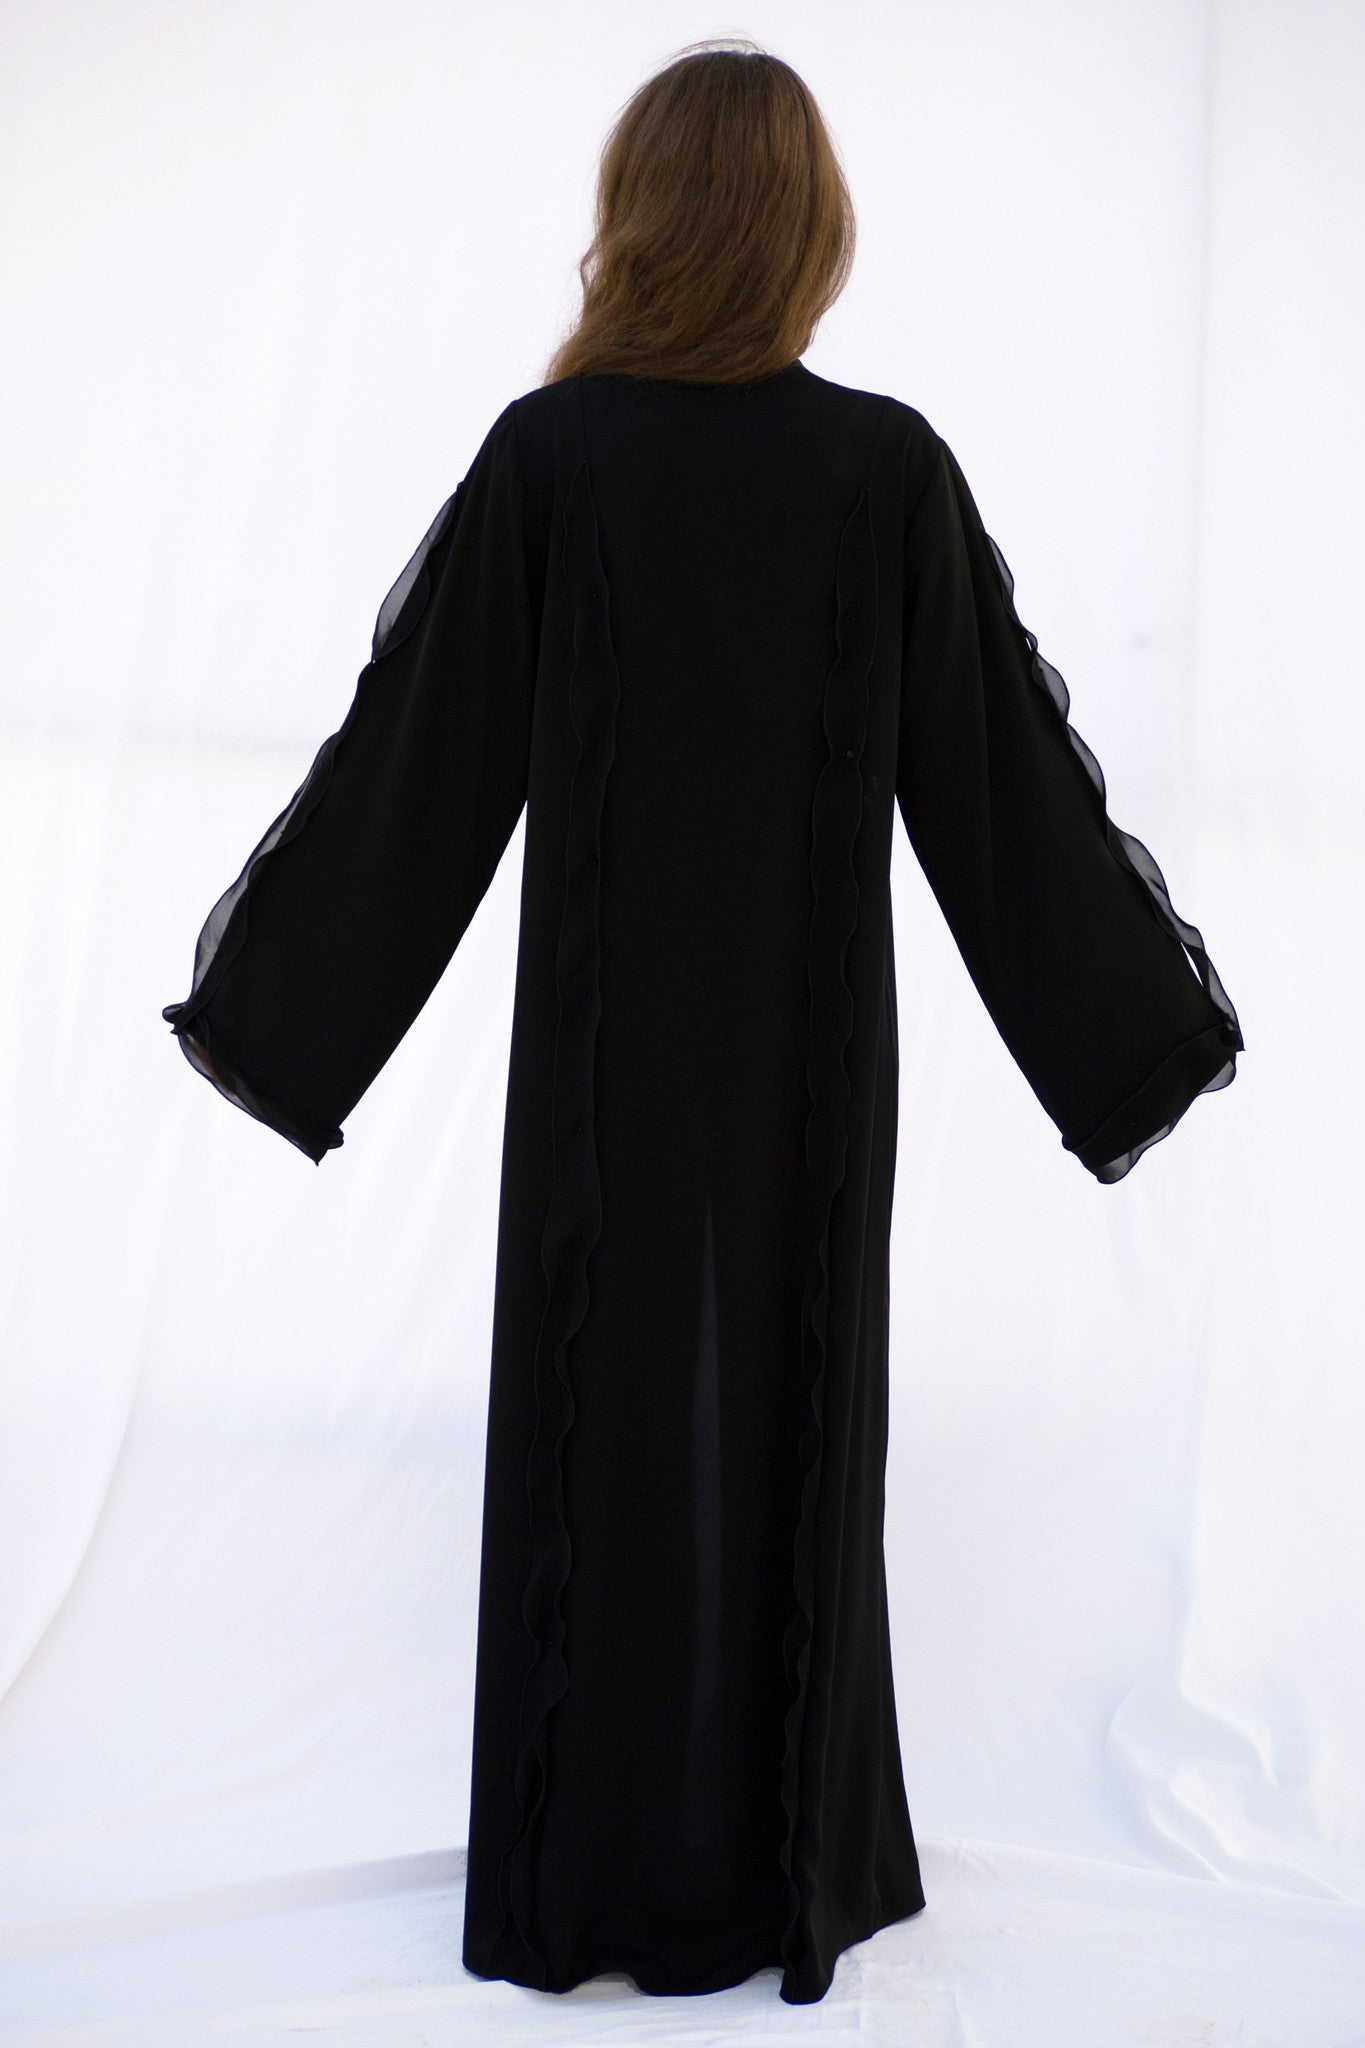 JENNA - ALB2088B - Arabesque Classic cut abaya shape with multiple joints embellished with chiffon freles and beads on front, back and sleeves.